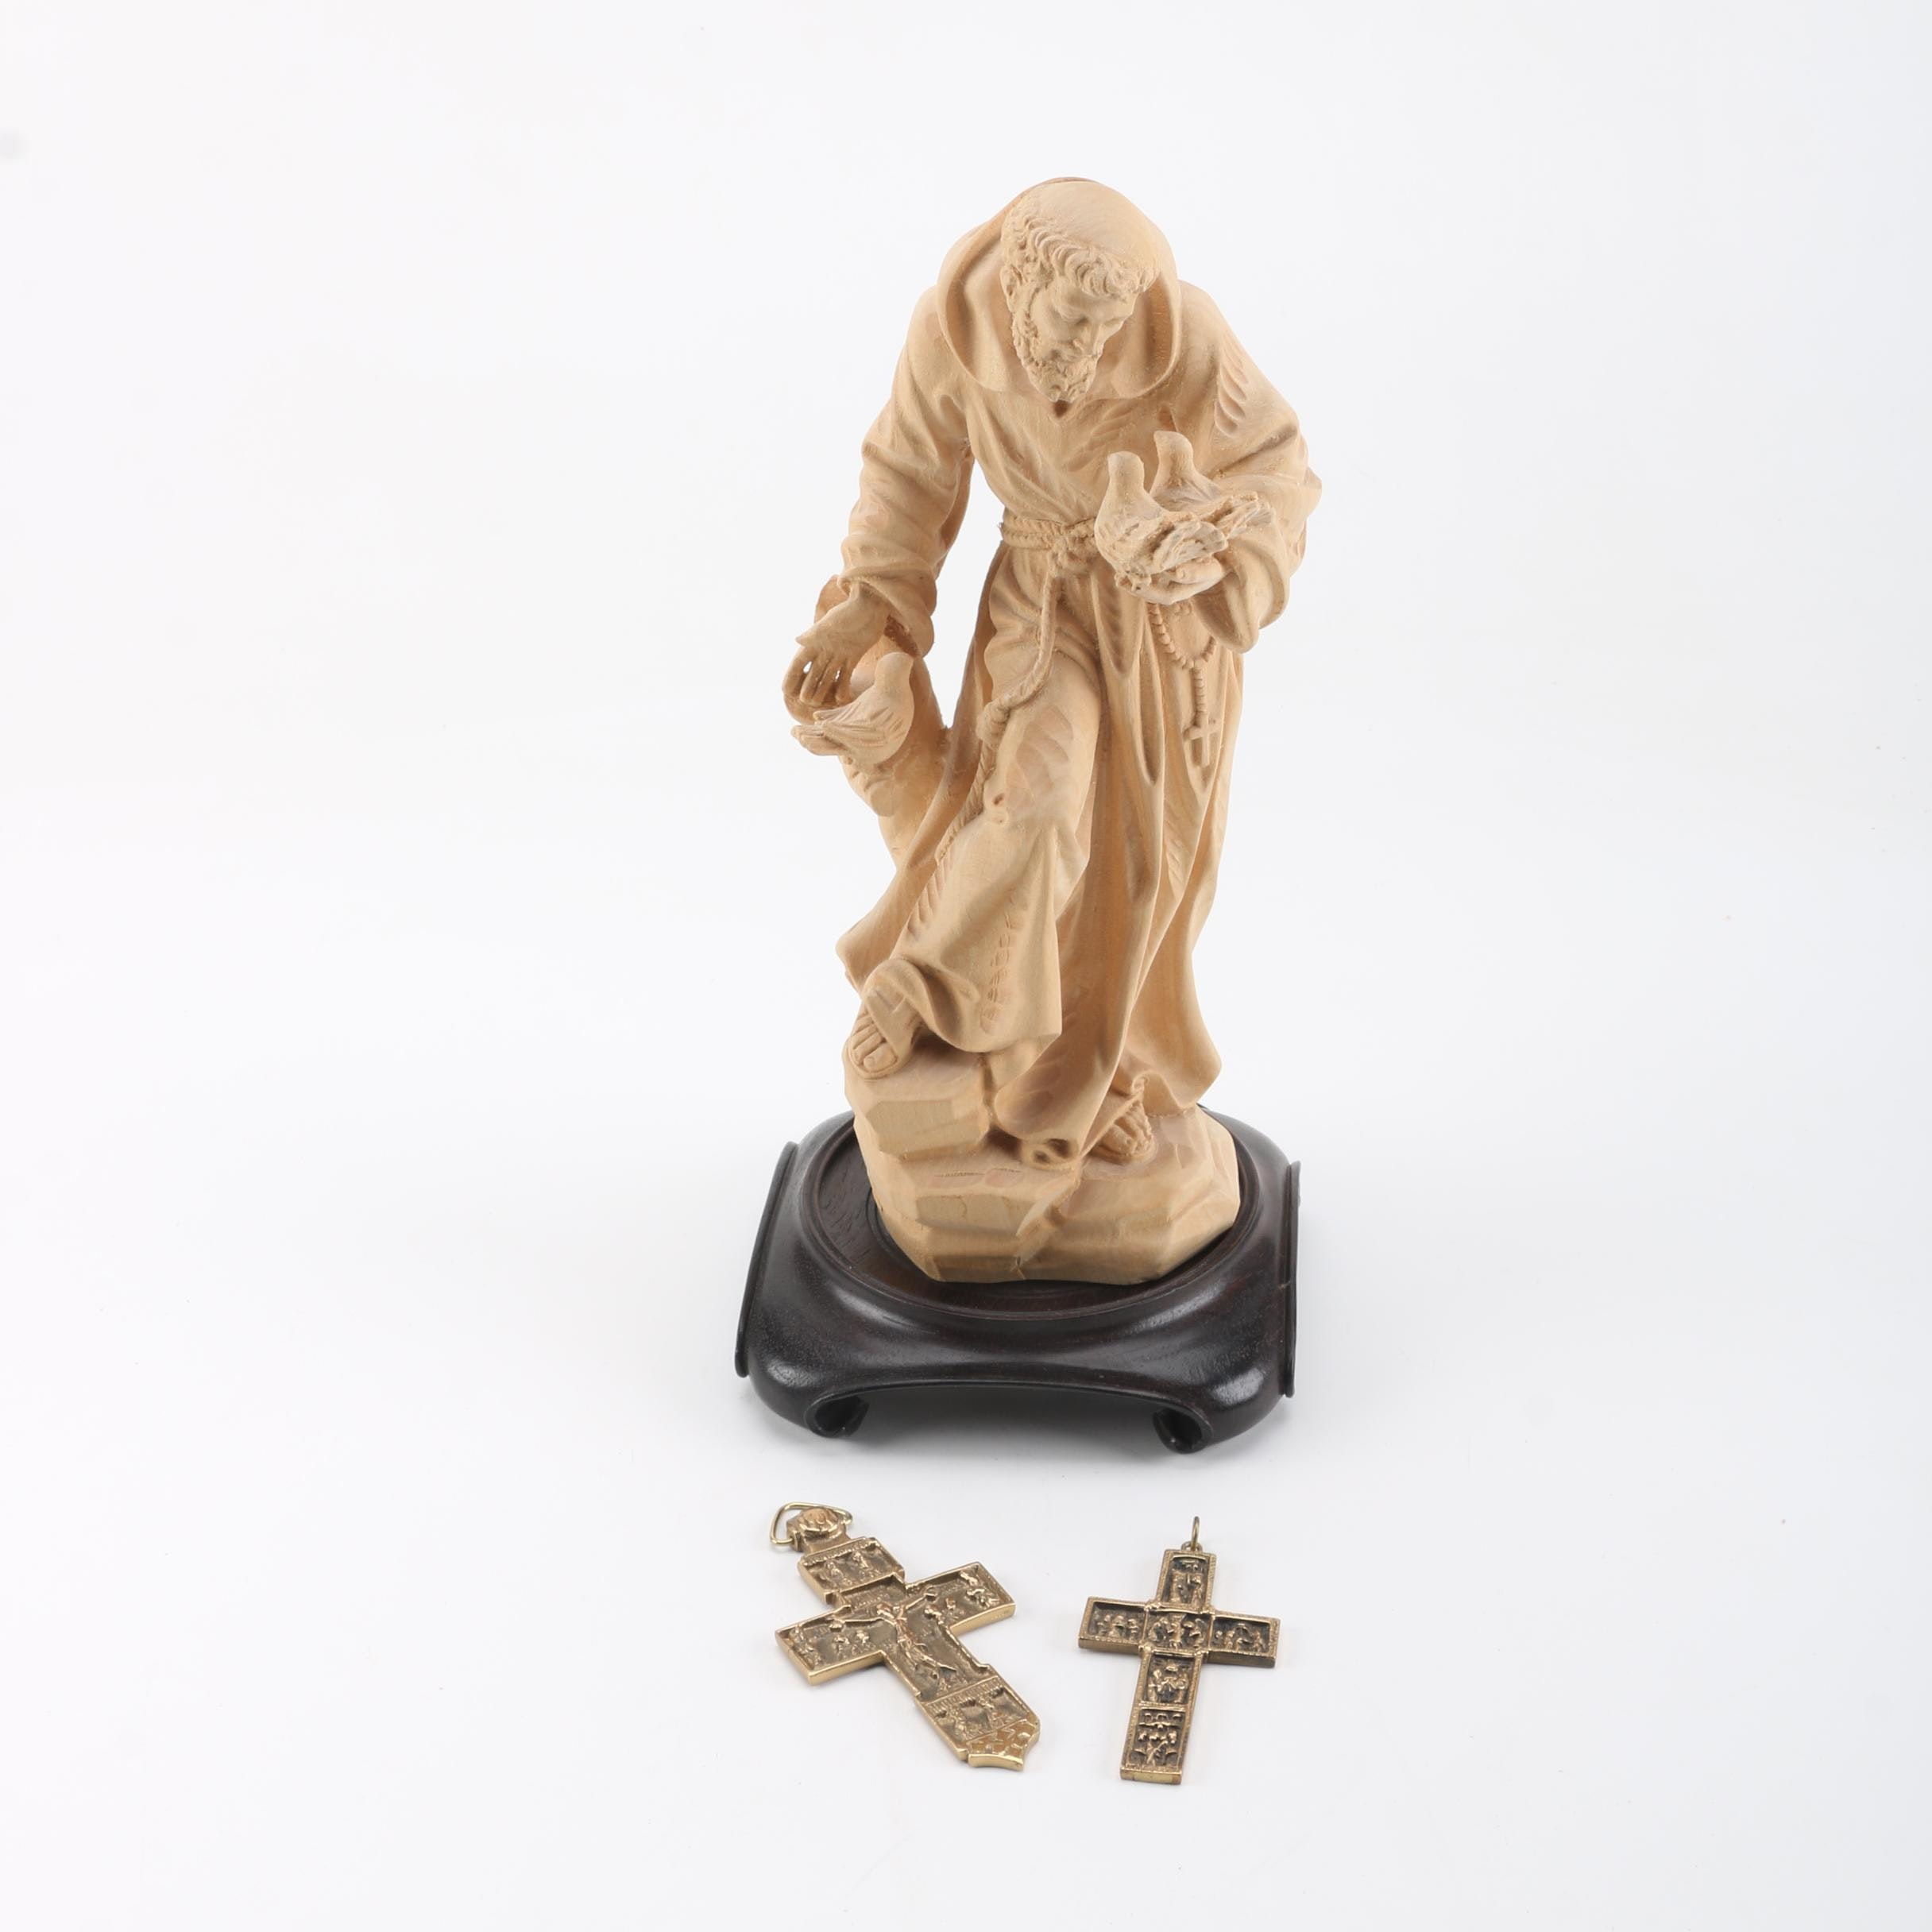 Wooden St. Francis Figurine with Base and Two Brass Crosses